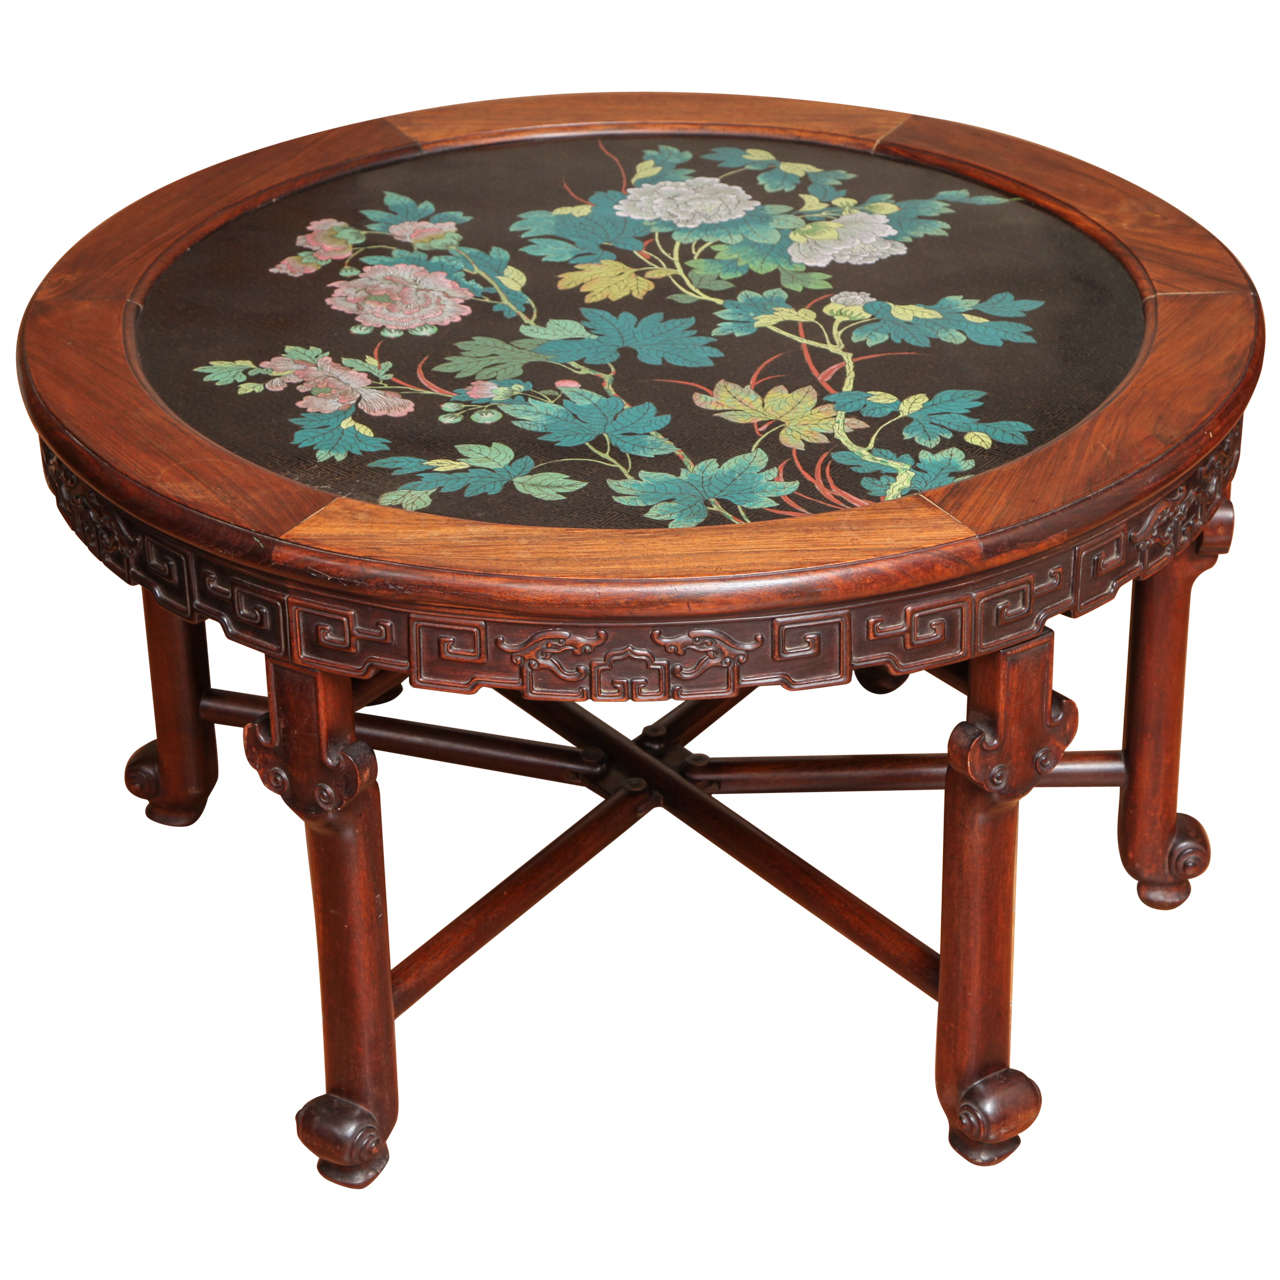 Antique Chinese Carved Rosewood And Floral Enamel Cloisonn Circular Table For Sale At 1stdibs